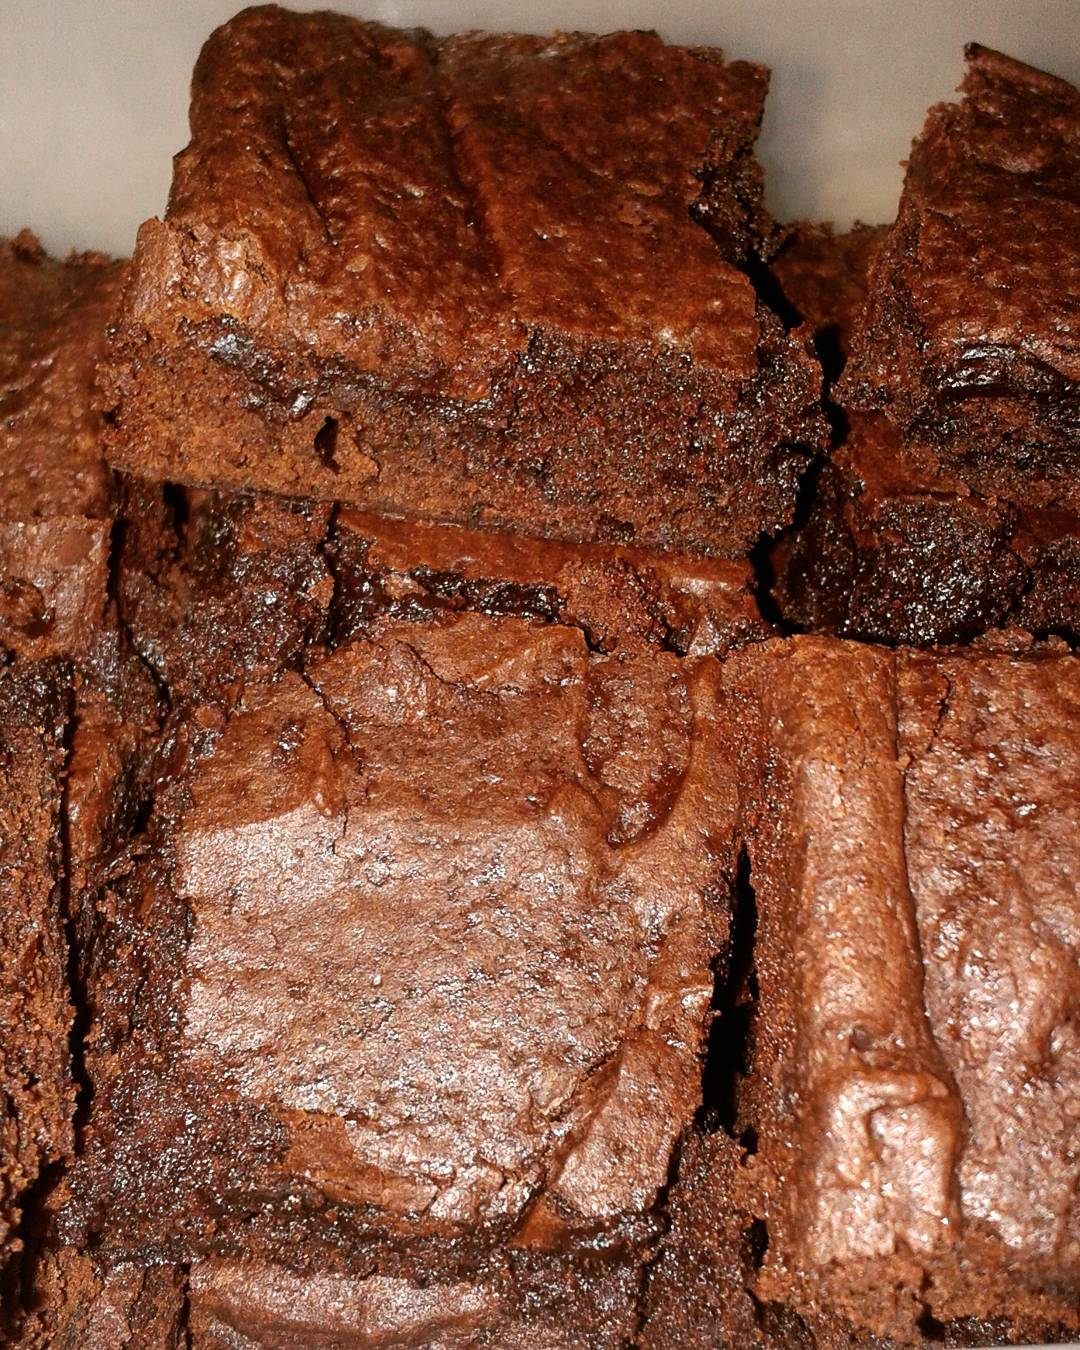 midnight dark chocolate brownies by @kinnymk.lau